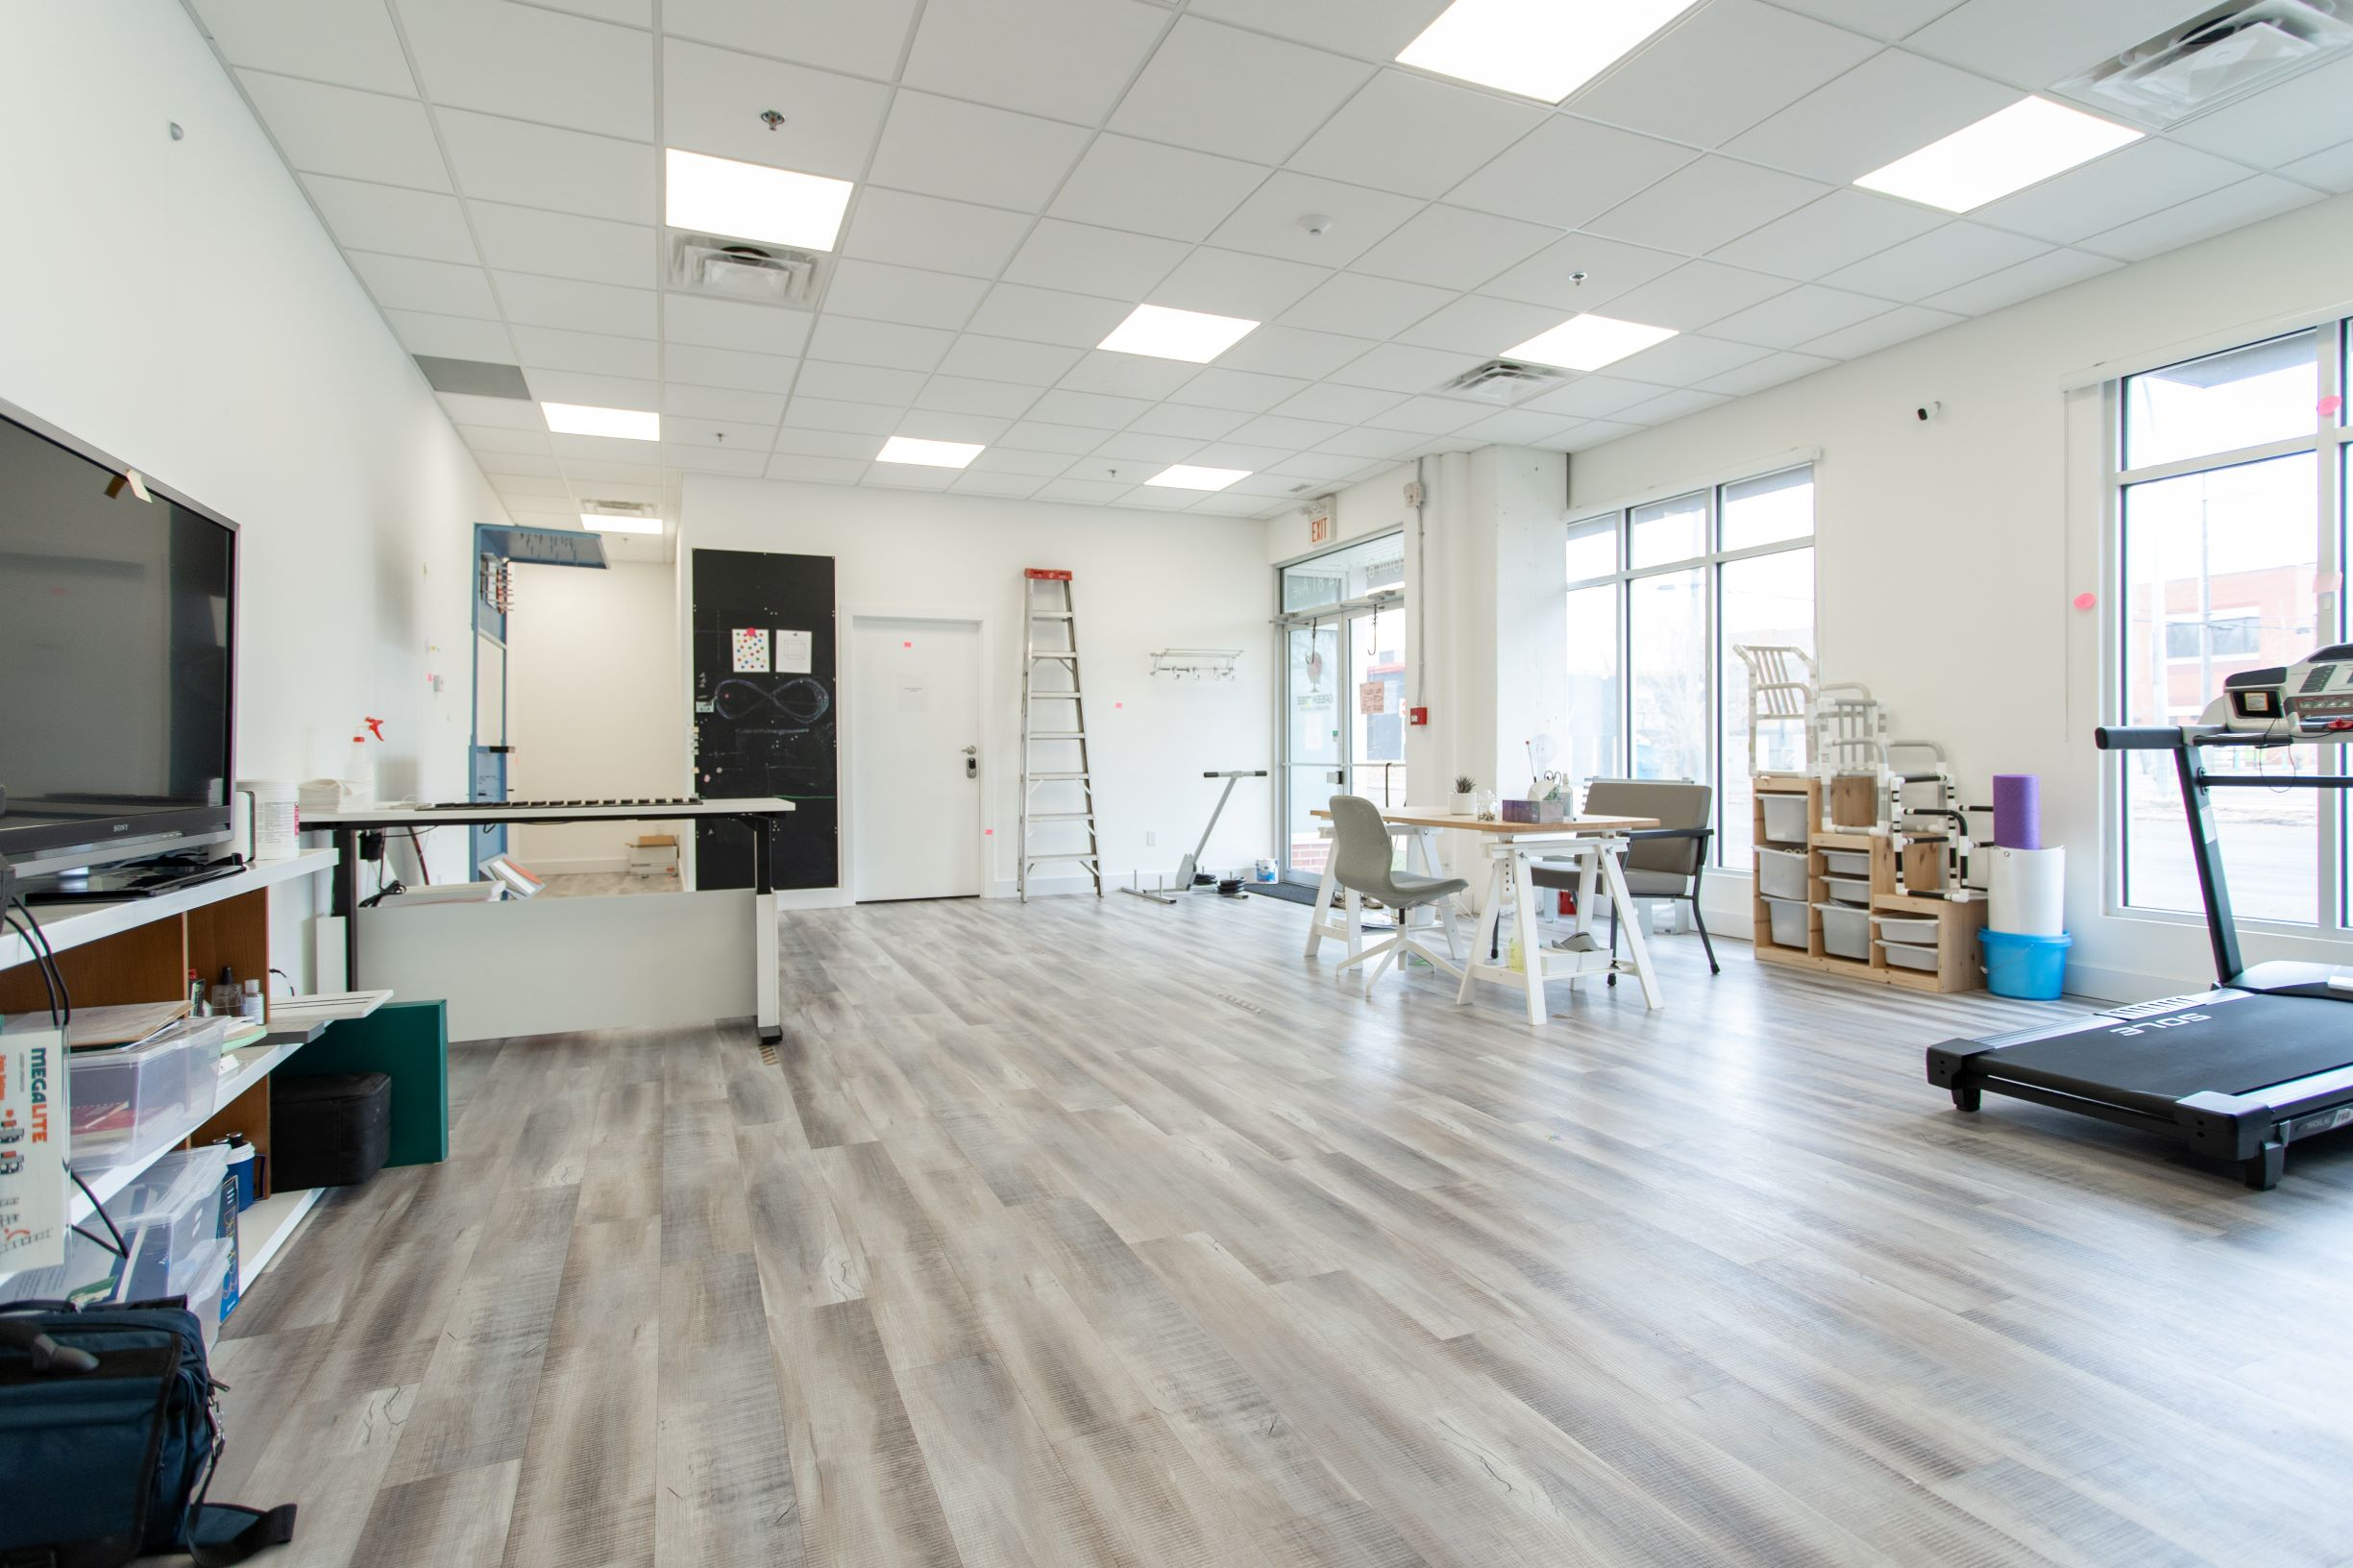 Panoramic view of clinical space on the upper level of the building